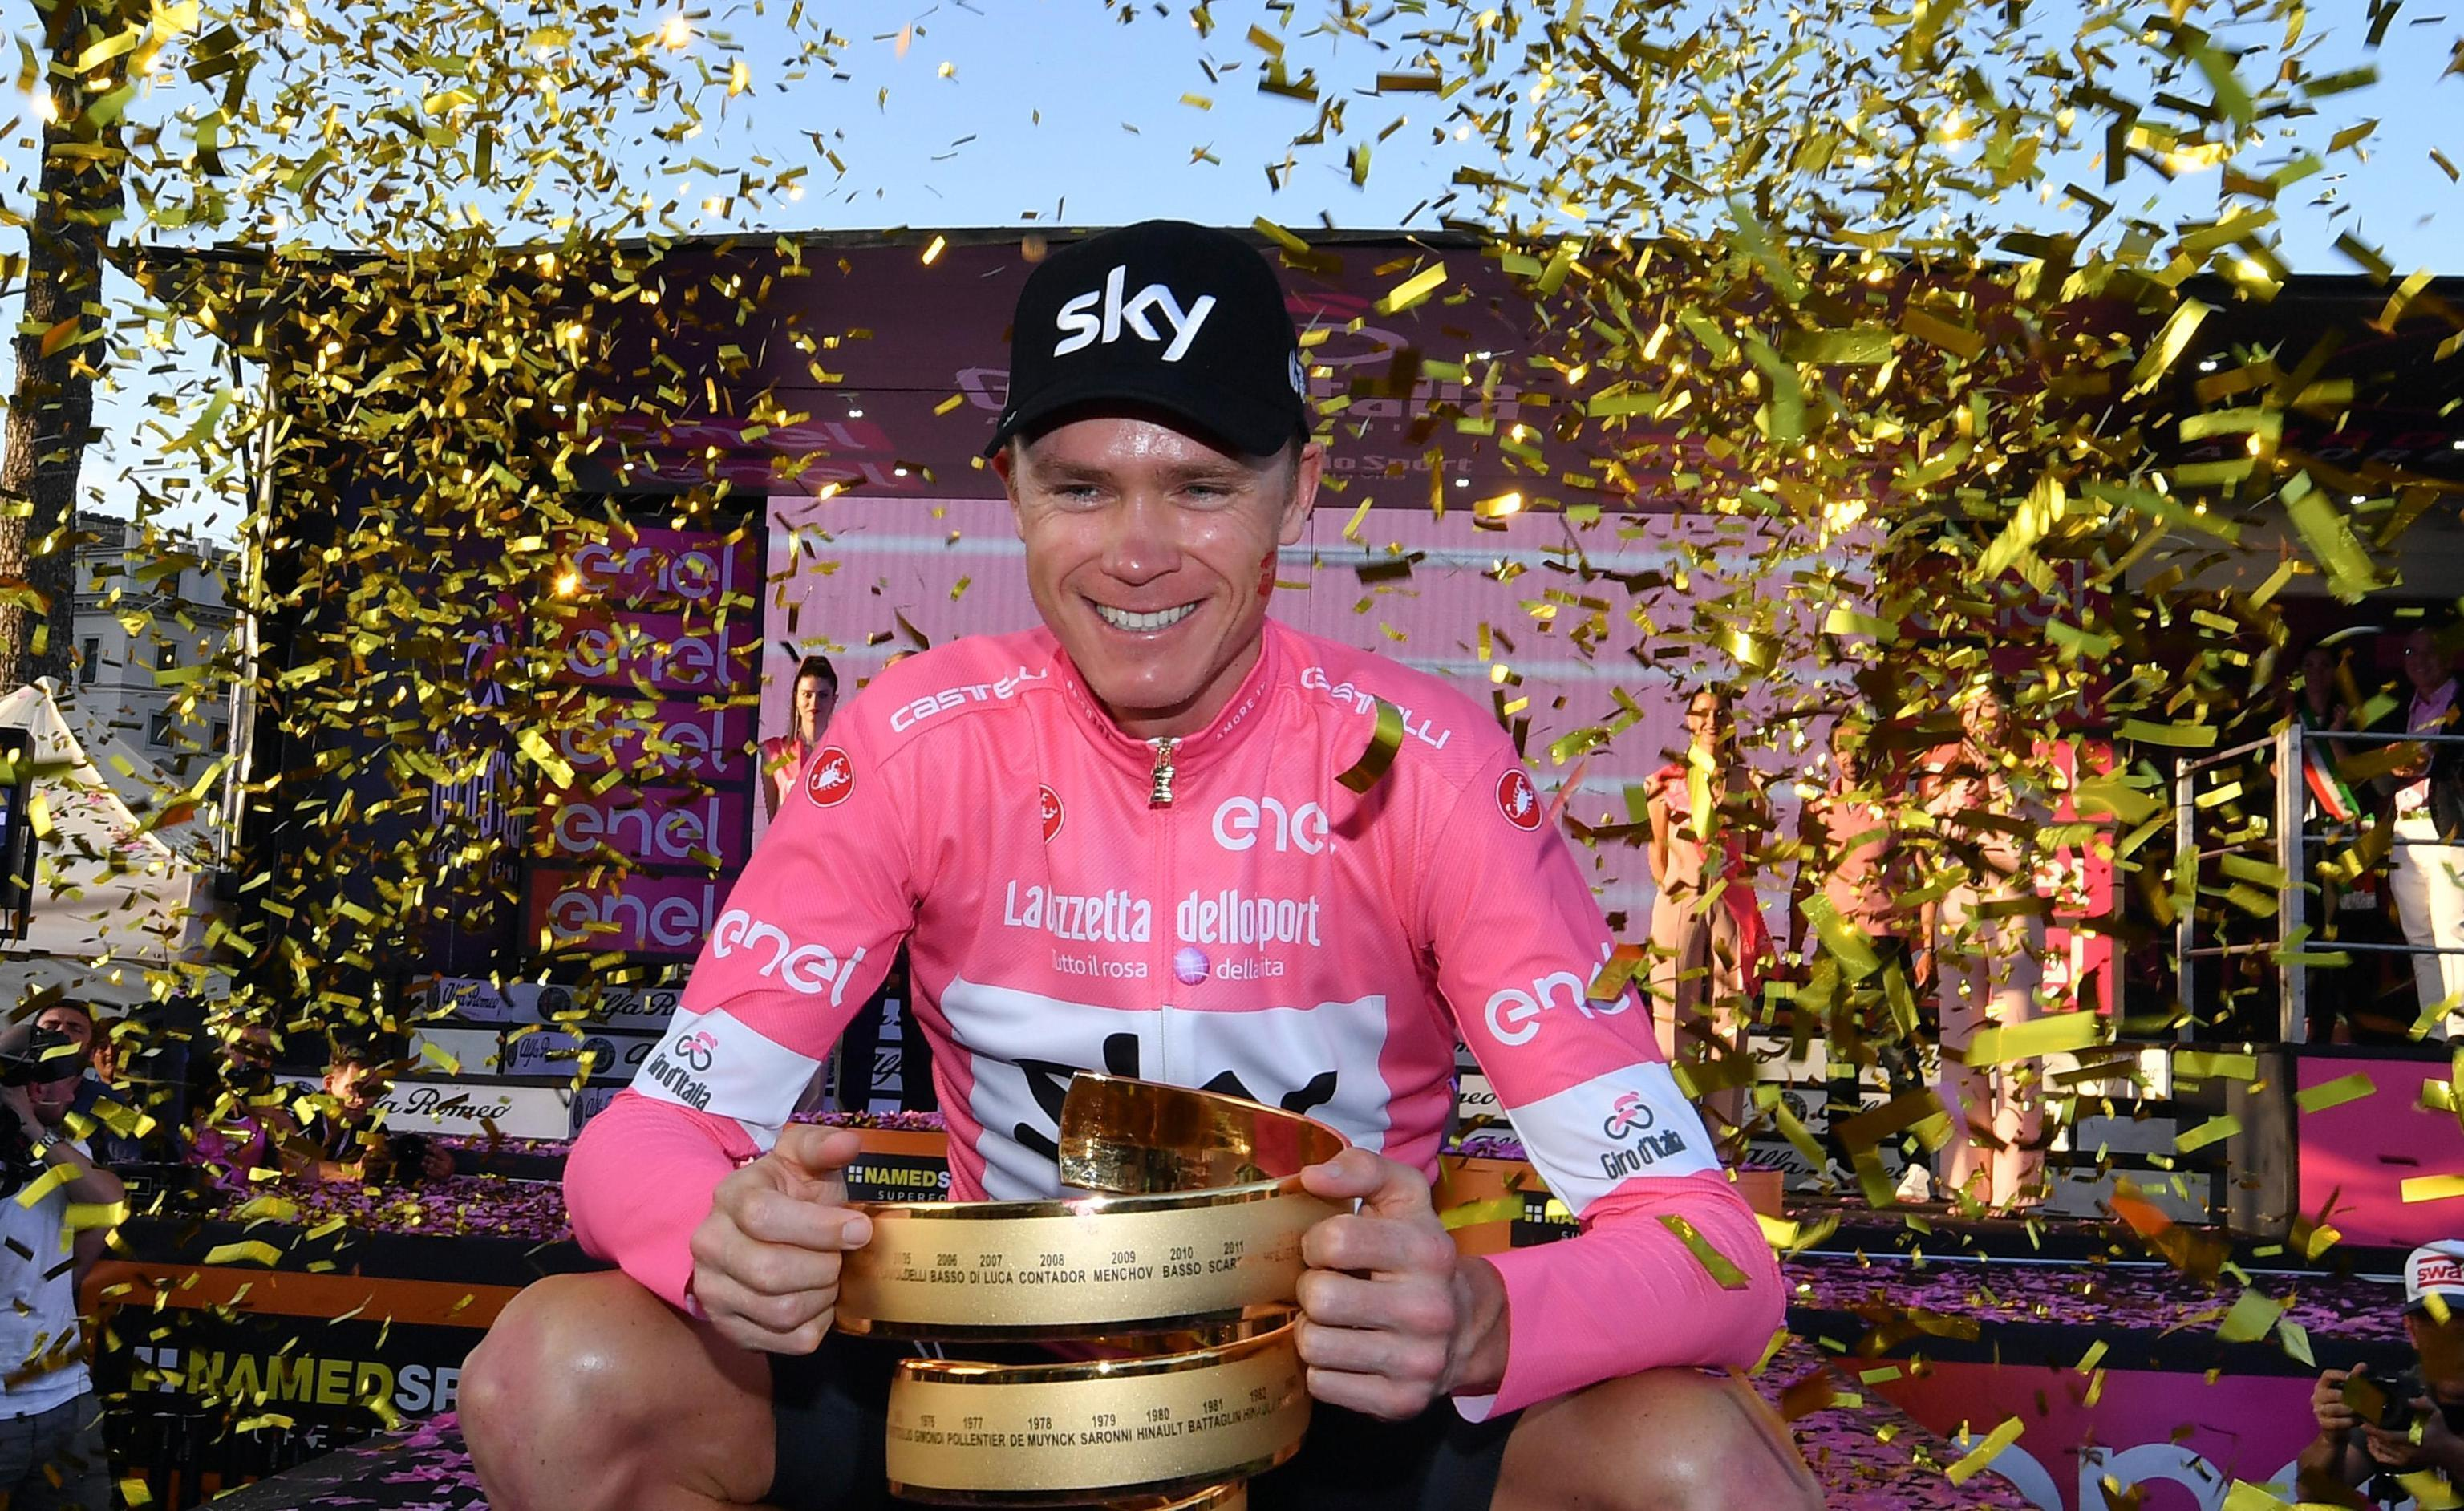 Chris Froome celebrates after winning the Giro d'Italia